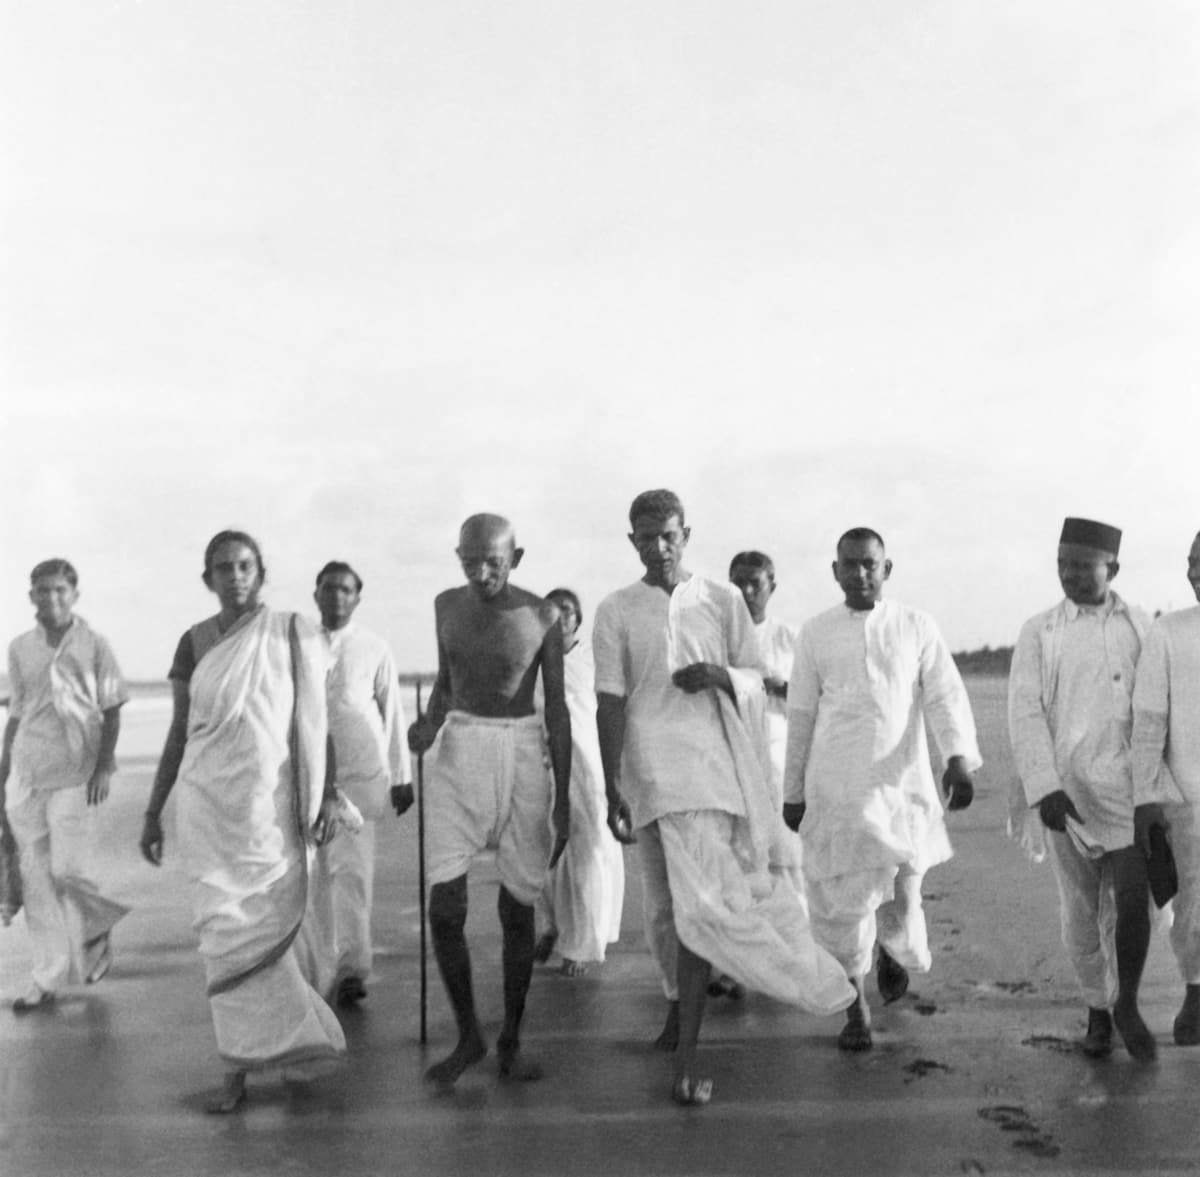 Gandhiji at Dandi March